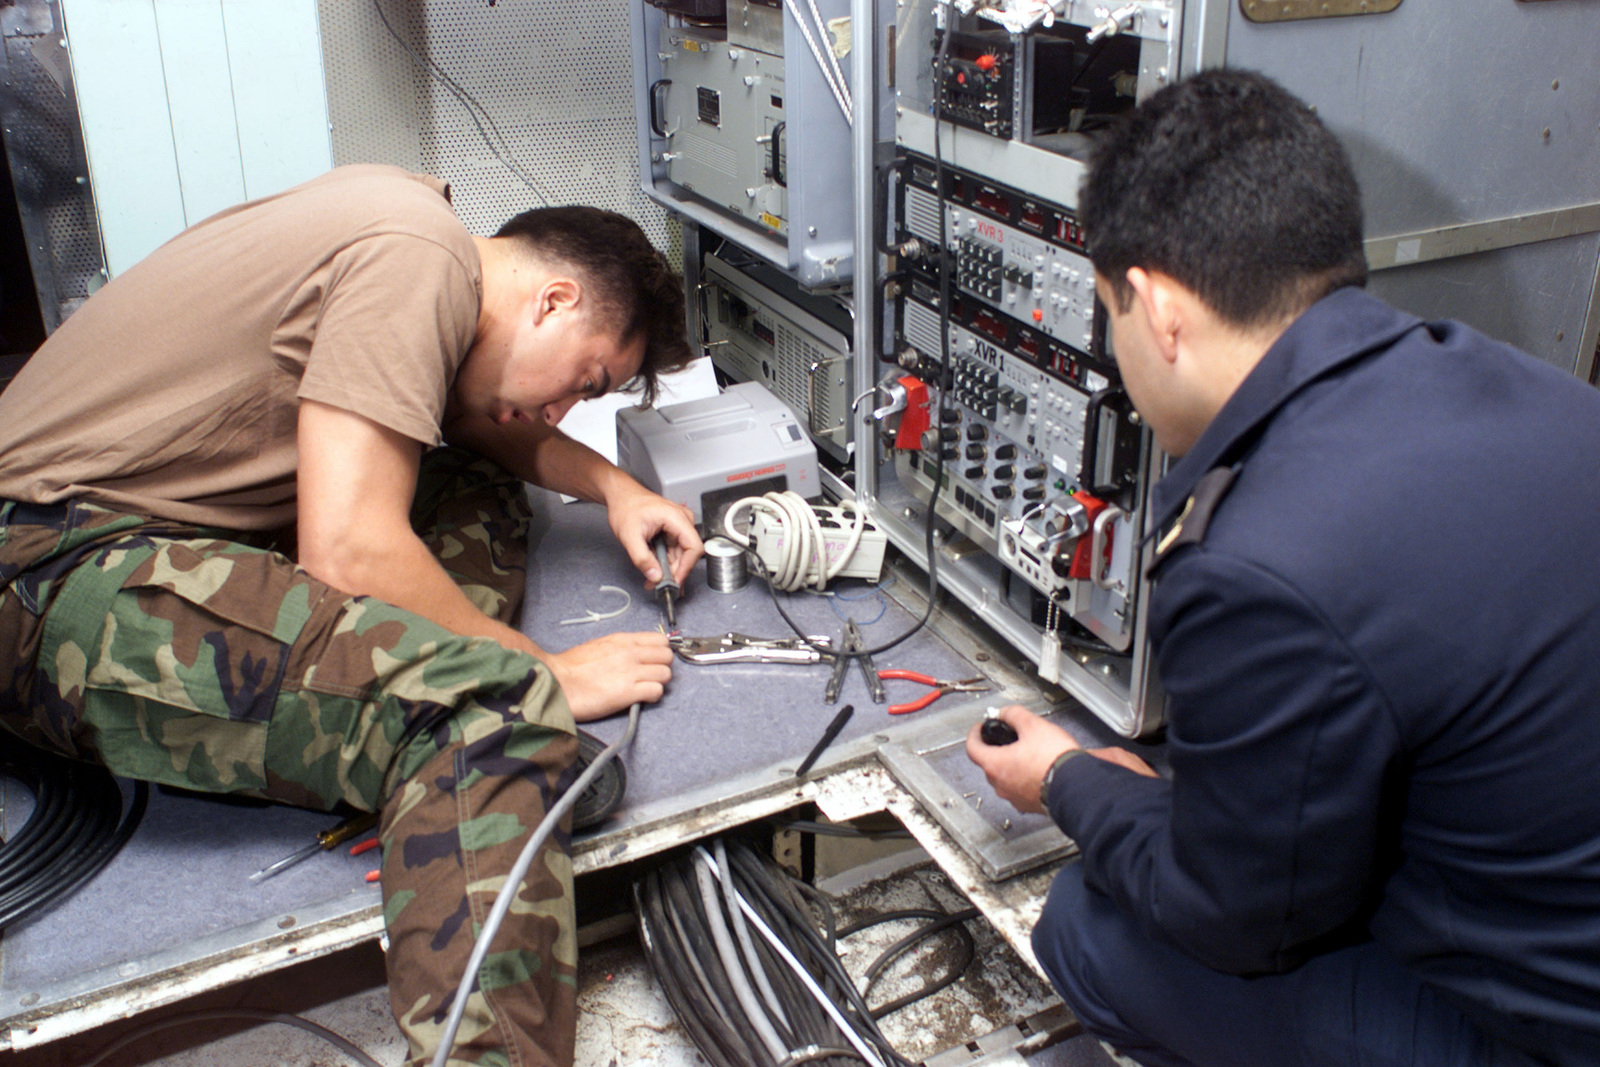 US Navy Electronics Technician 3rd Class James Kyne works with a Chilean sailor aboard the Chilean flagship BLANCO ENCALADA (DLH 15) in Valparaiso, Chile, installing a data link as part of Exercise TEAMWORK SOUTH '99. US, Canadian and Chilean forces will be working together on training exercises off the coast of South America through July